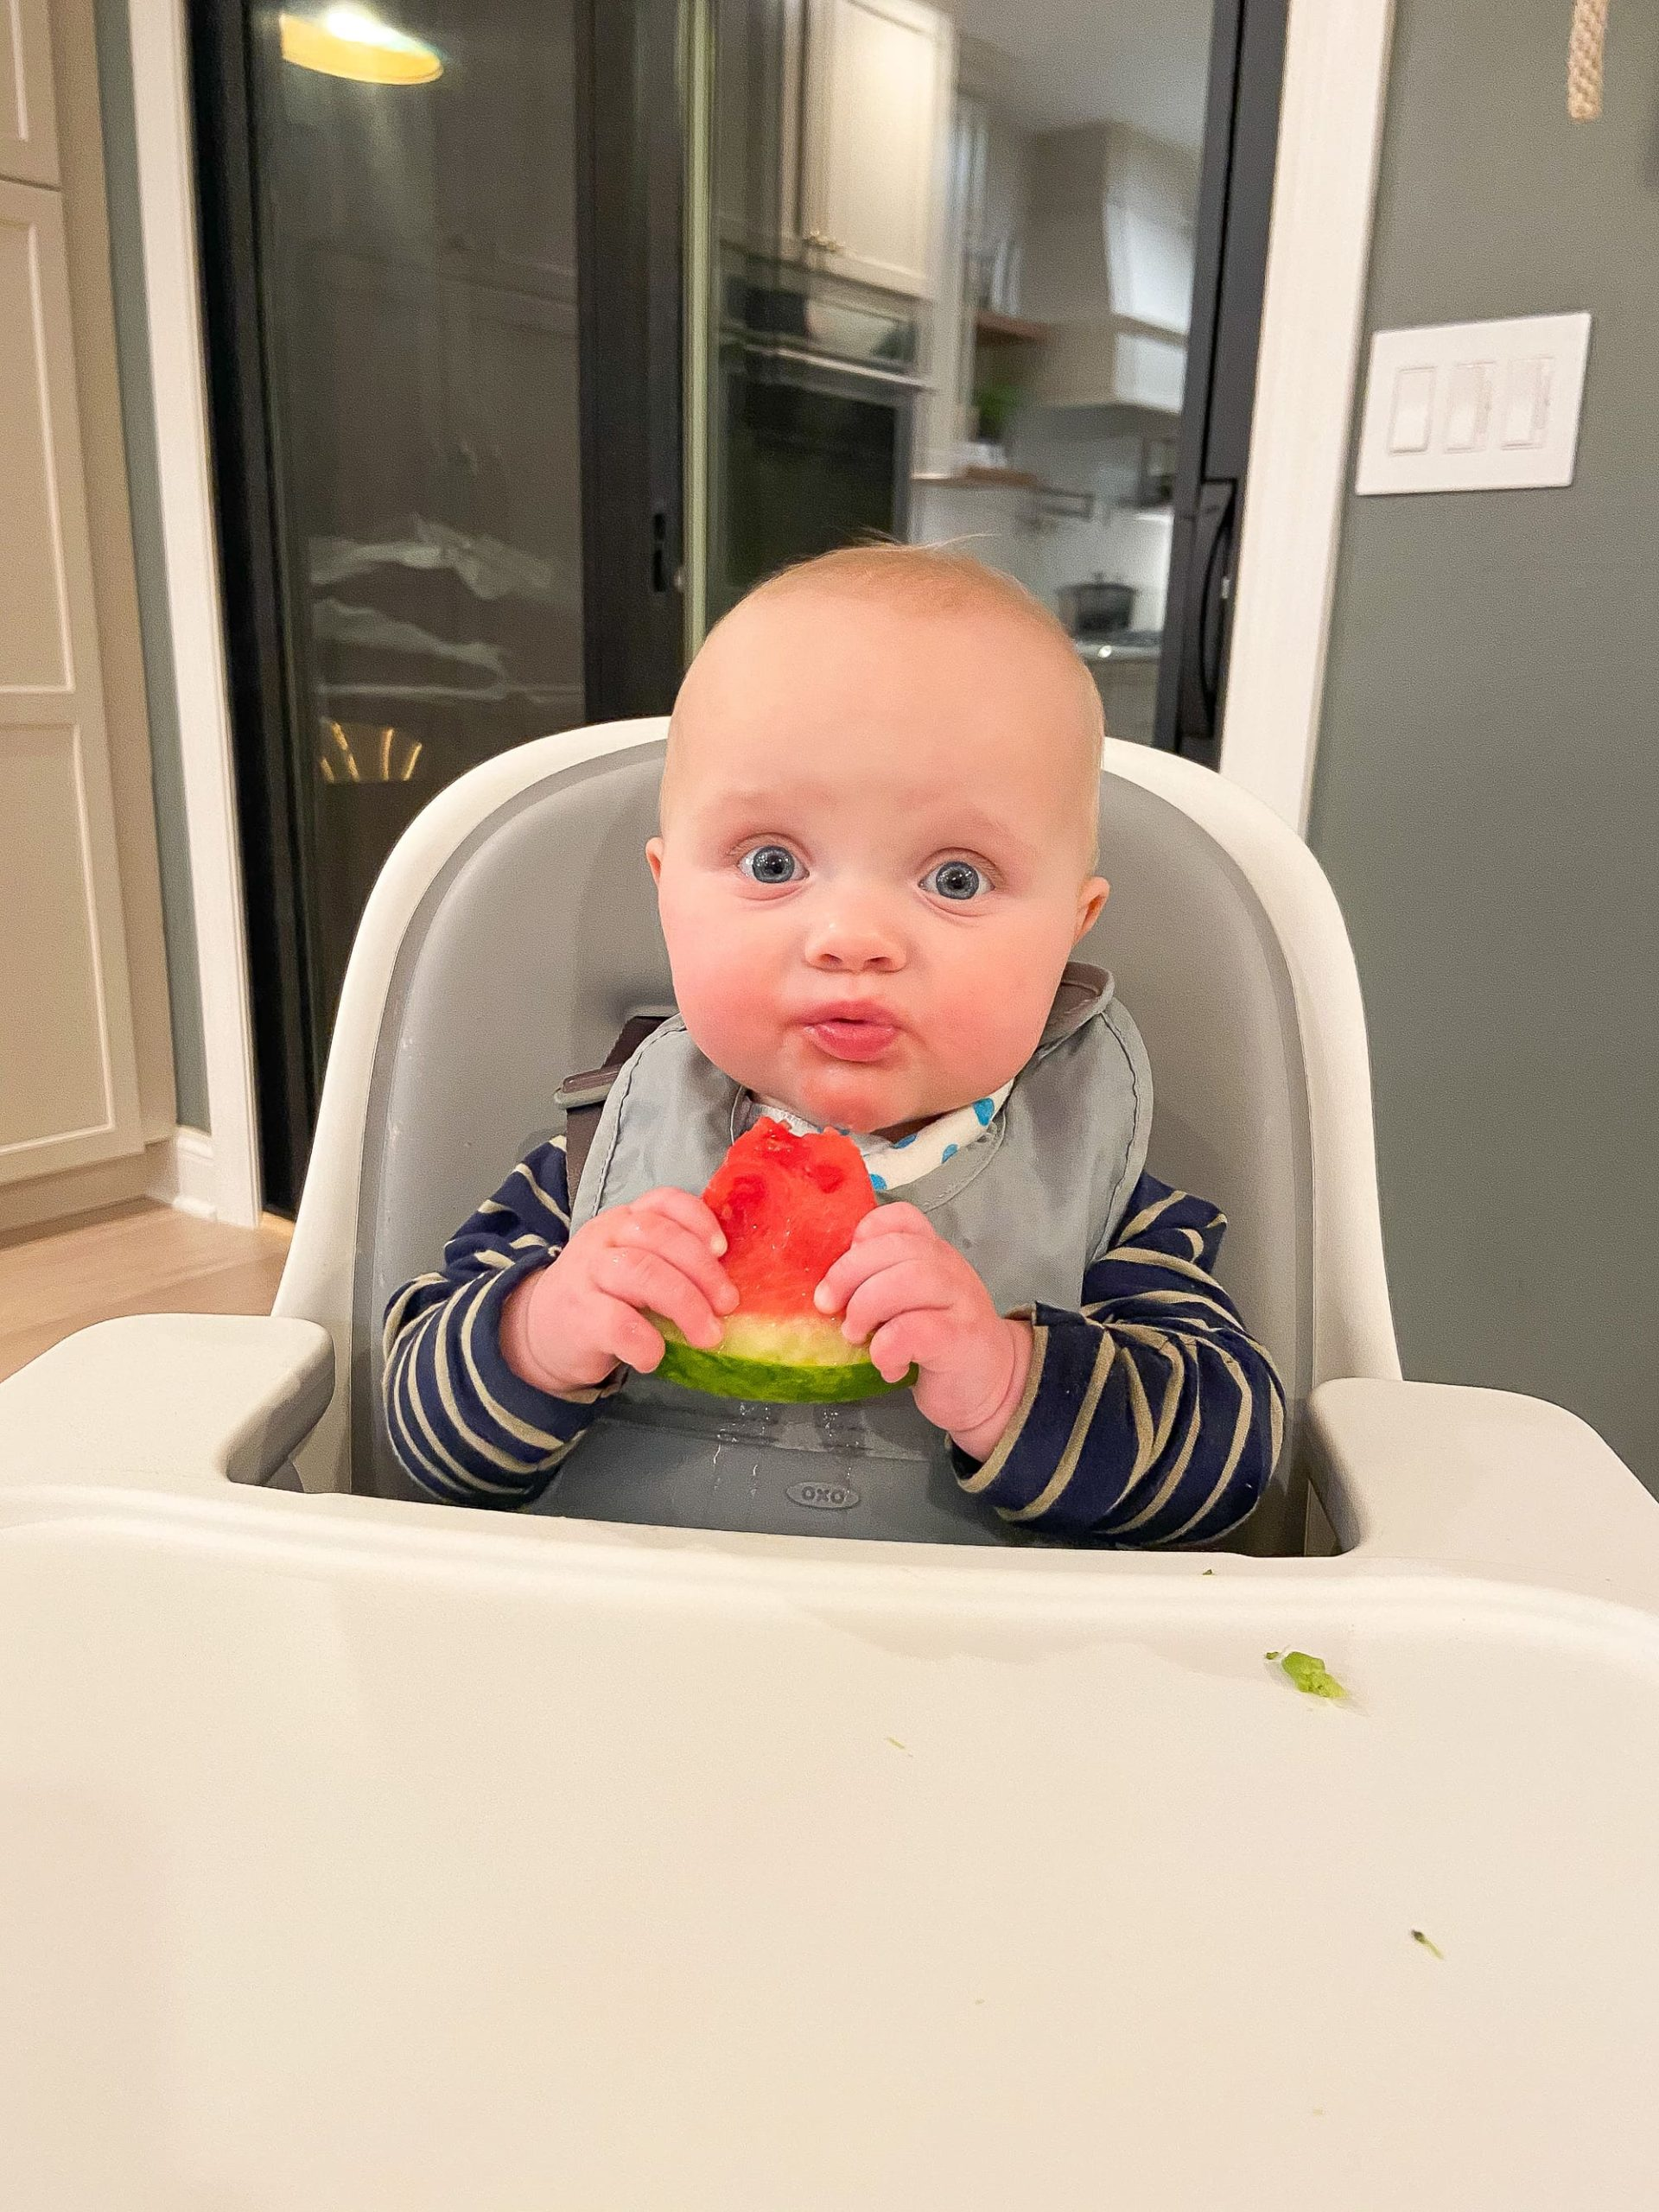 Rory eating watermelon from baby led weaning